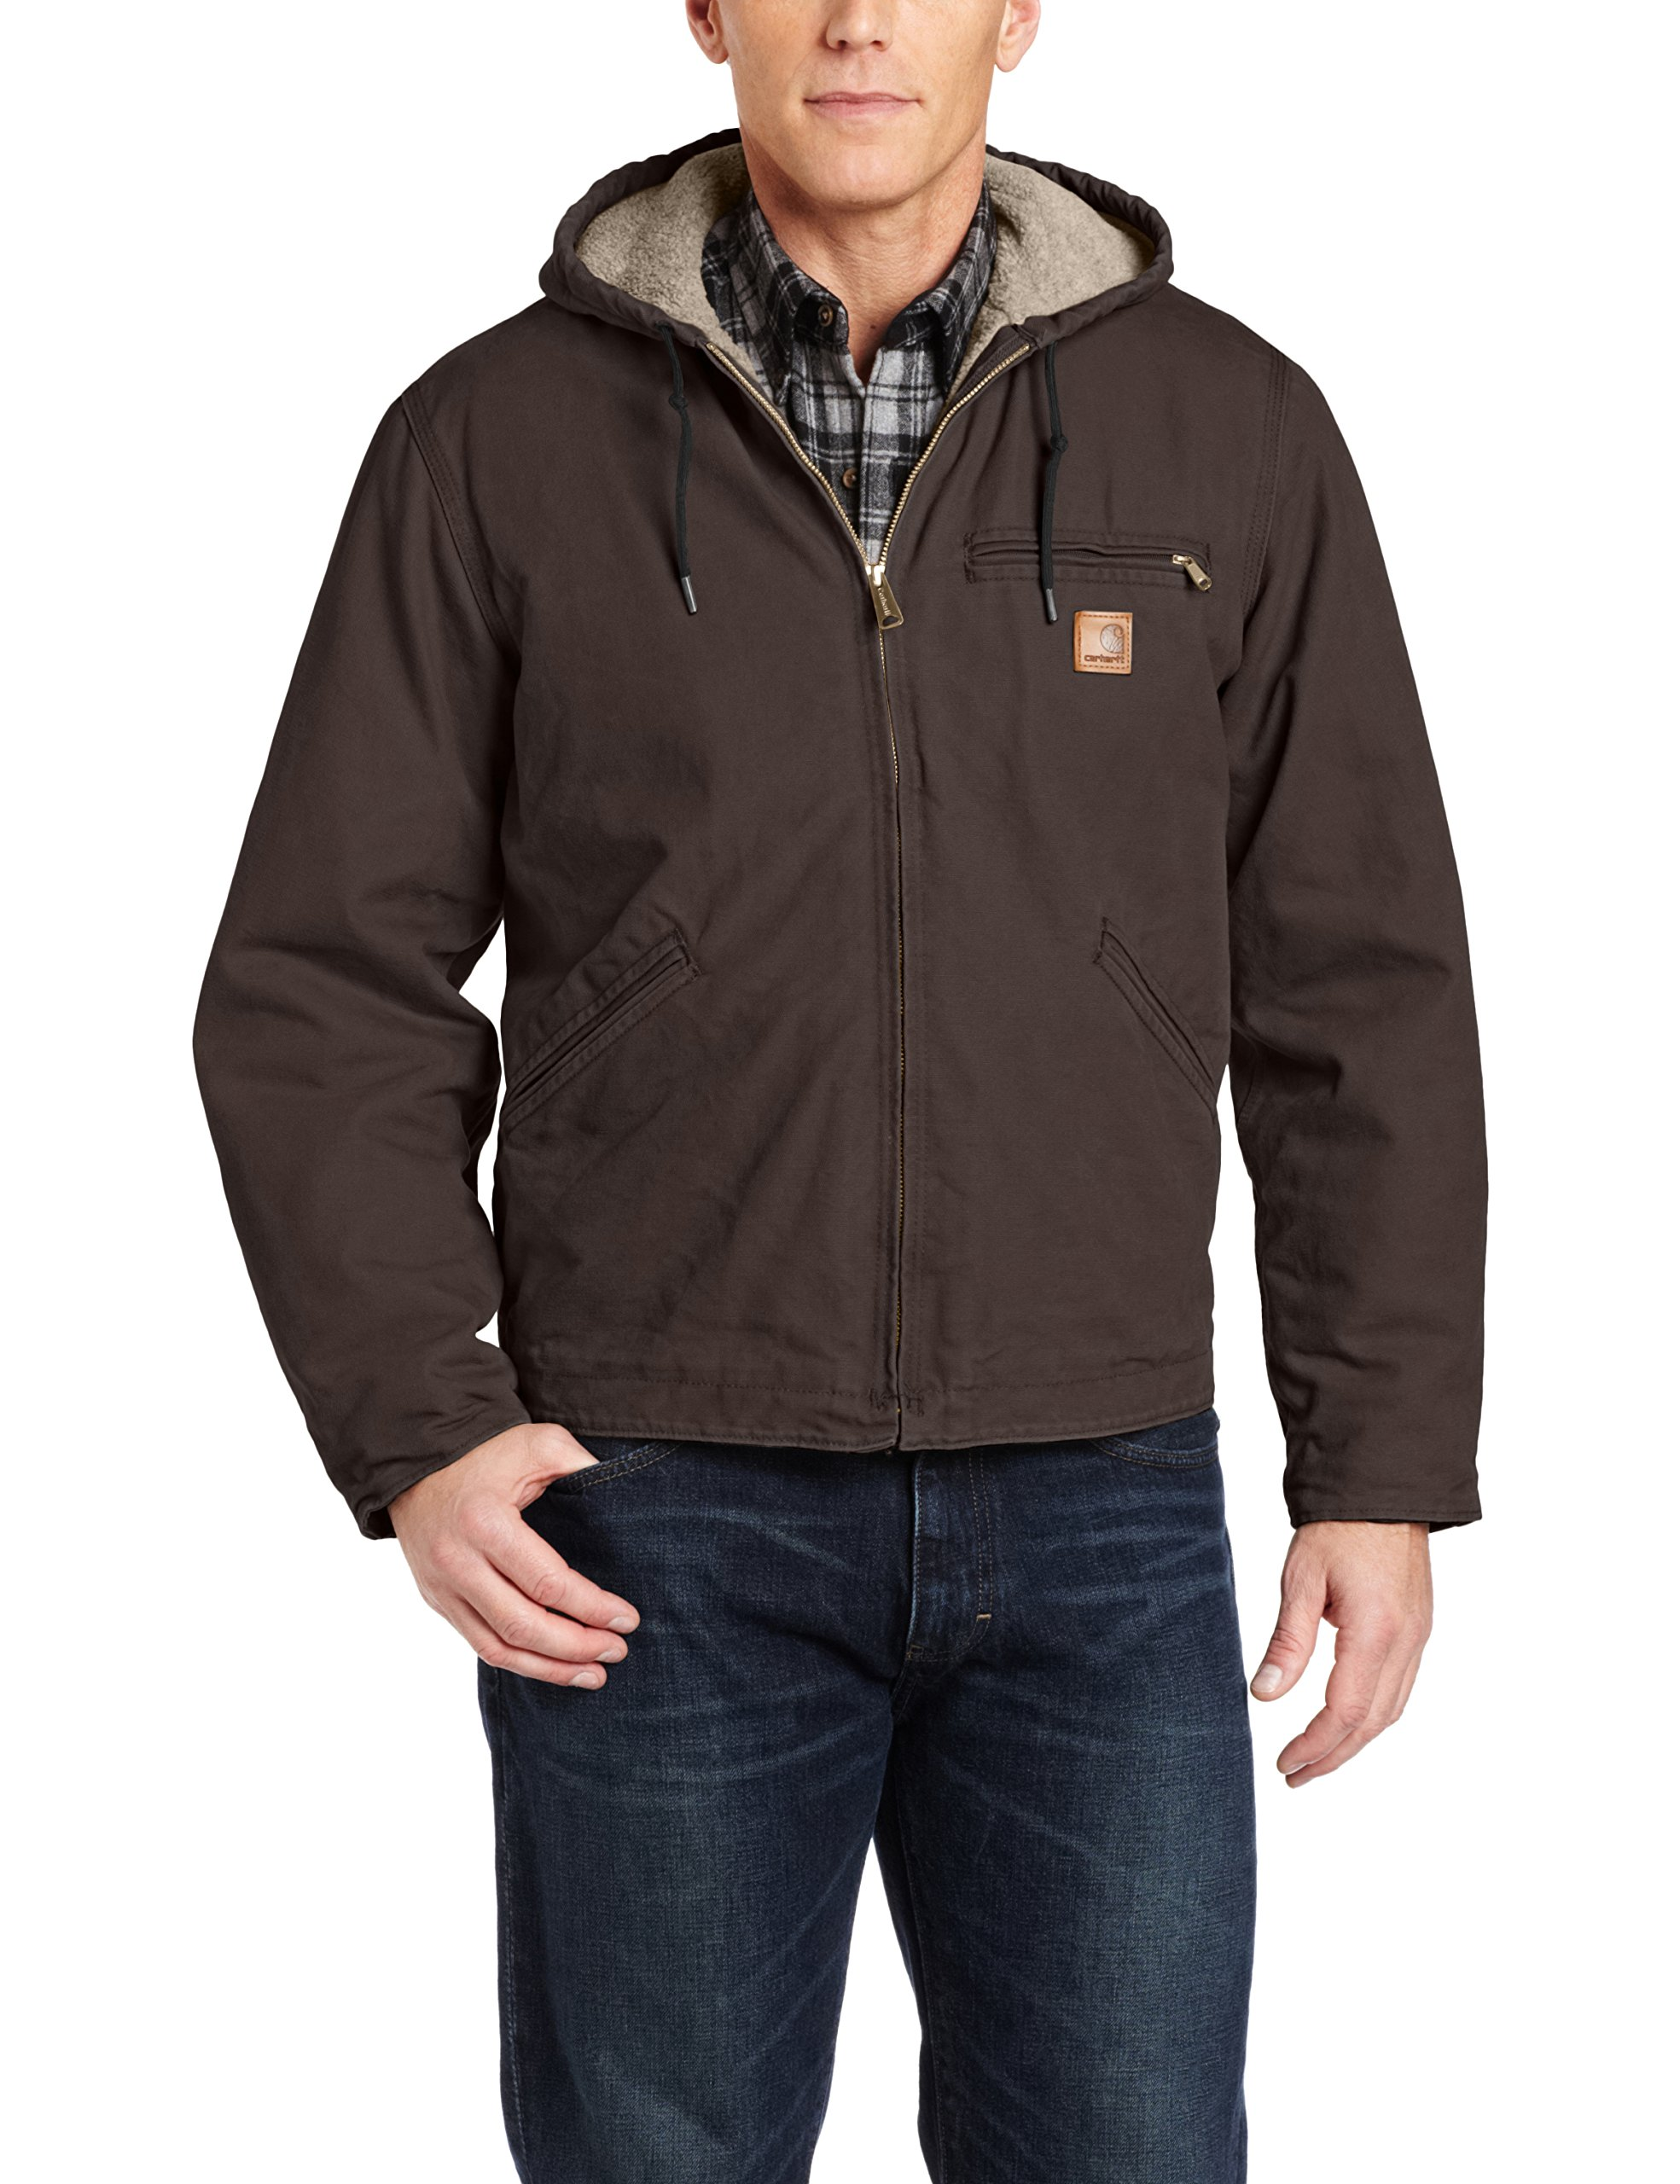 Carhartt Men's Big & Tall Sherpa Lined Sandstone Sierra Jacket J141,Dark Brown,XXXX-Large